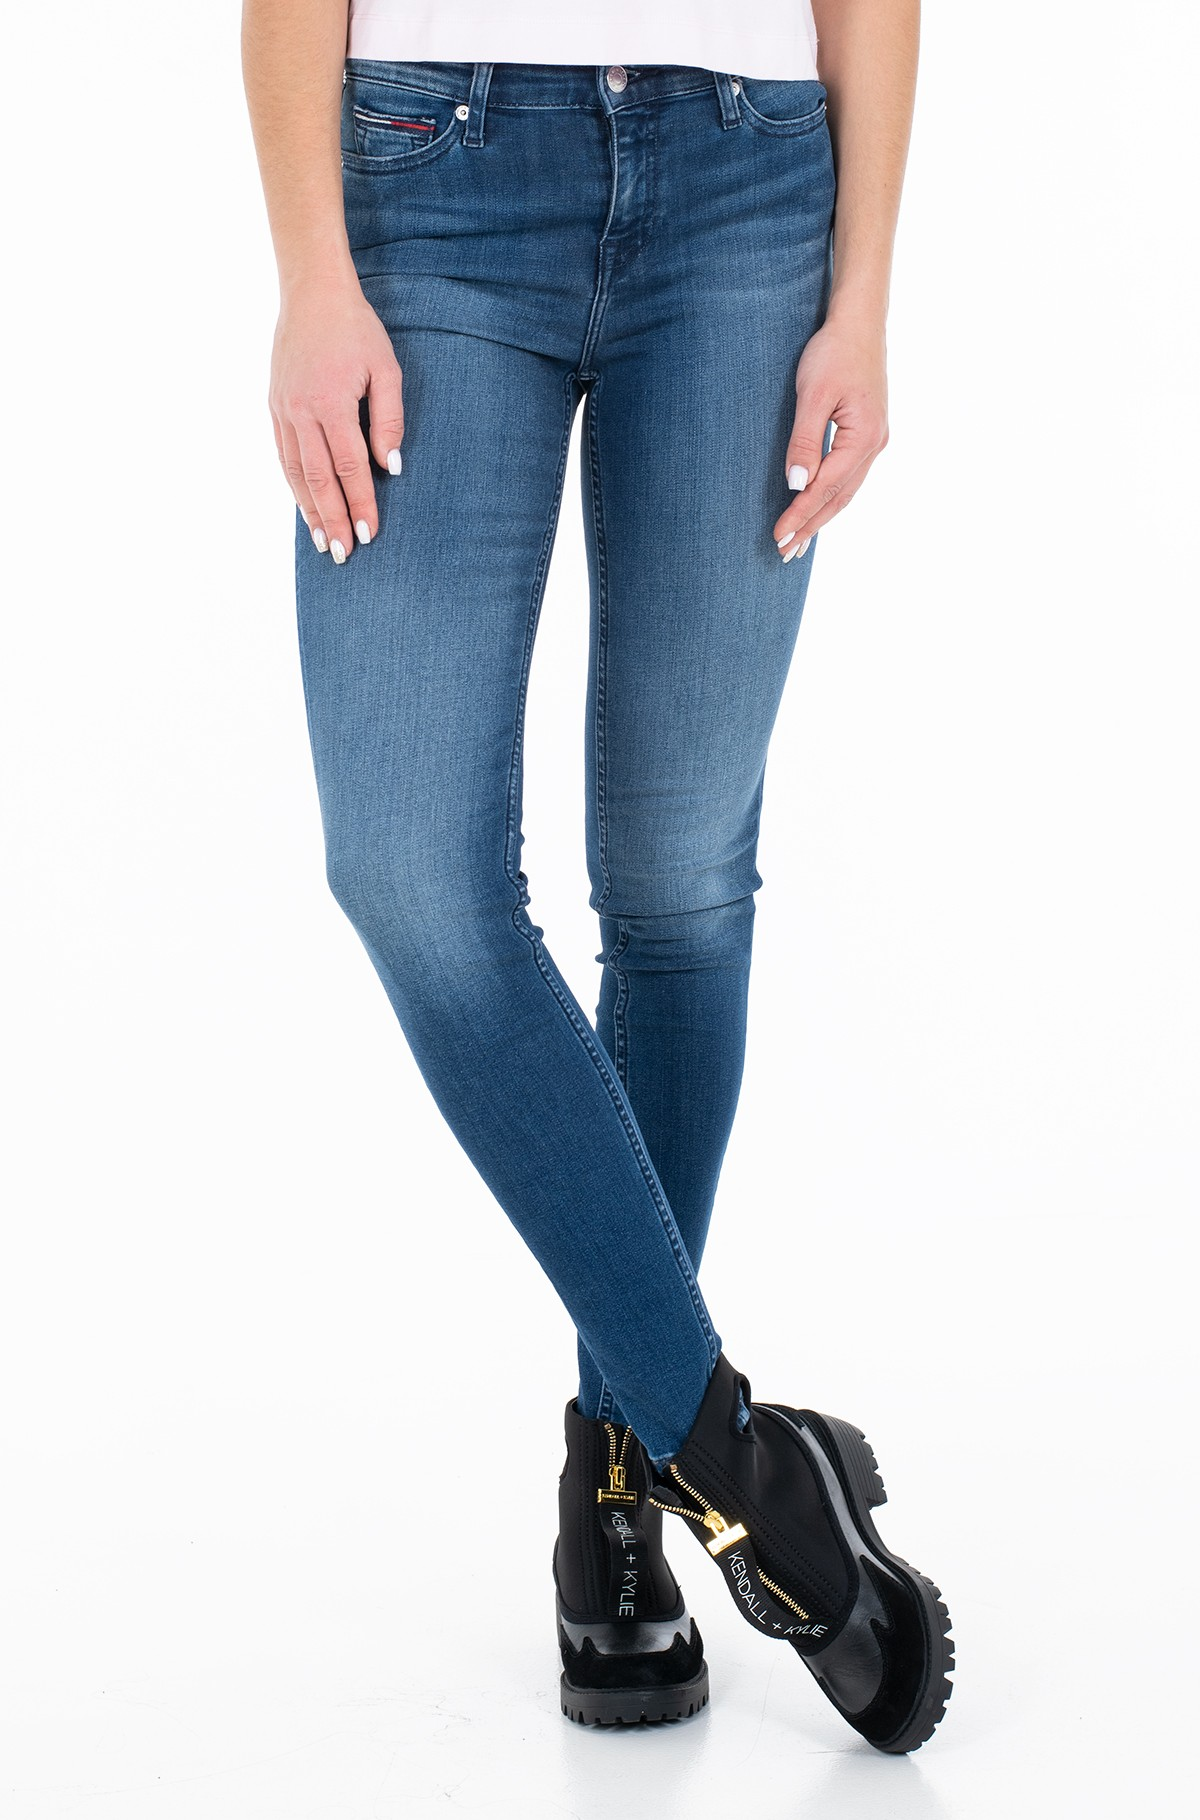 Jeans NORA MR SKNY NNMBS-full-1